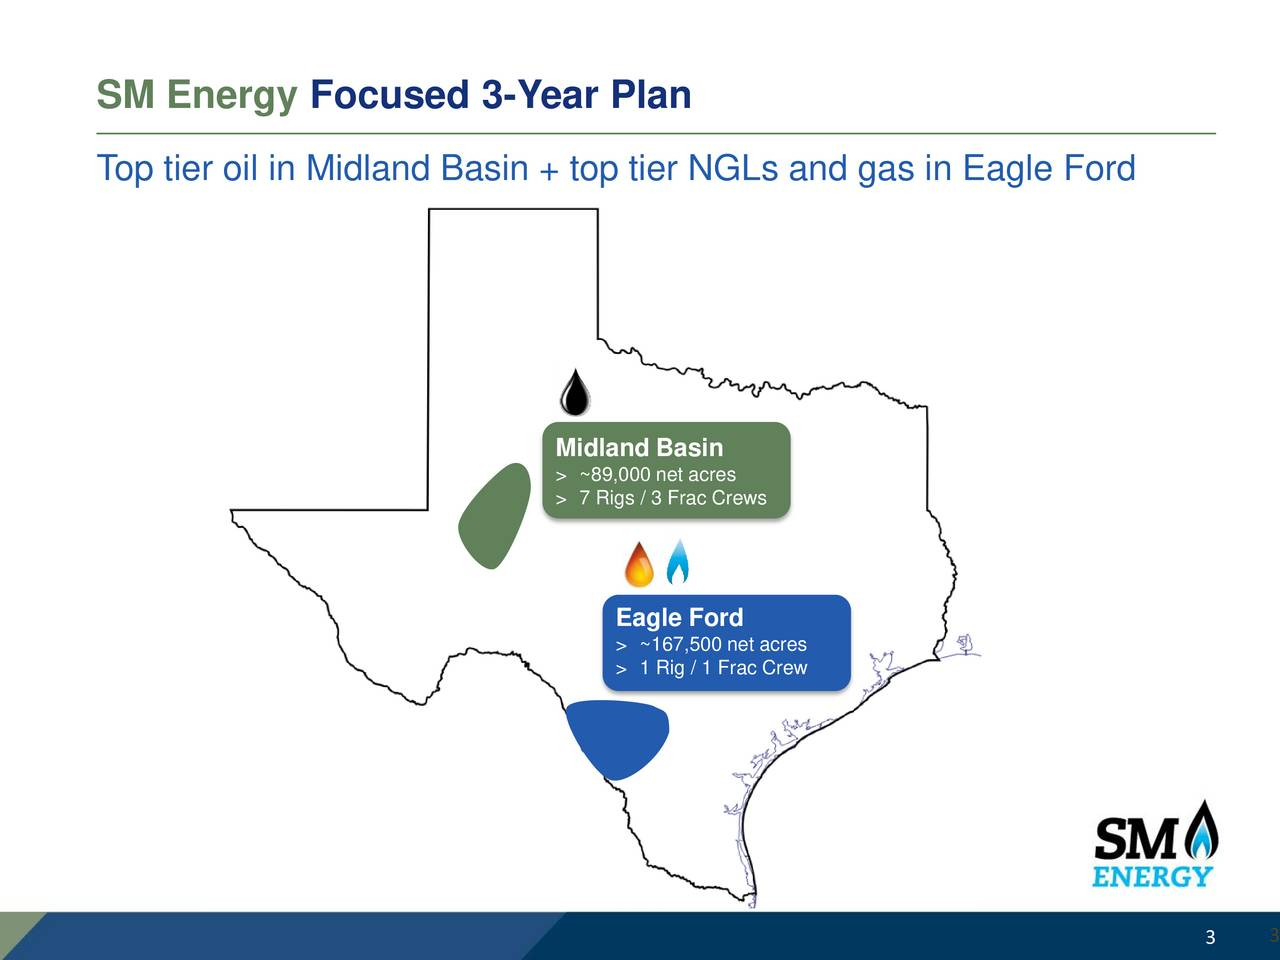 Top tier oil in Midland Basin + top tier NGLs and gas in Eagle Ford Midland Basin > 7 Rigs / 3 Frac Crews Eagle Ford > ~167,500 net acres > 1 Rig / 1 Frac Crew 3 3